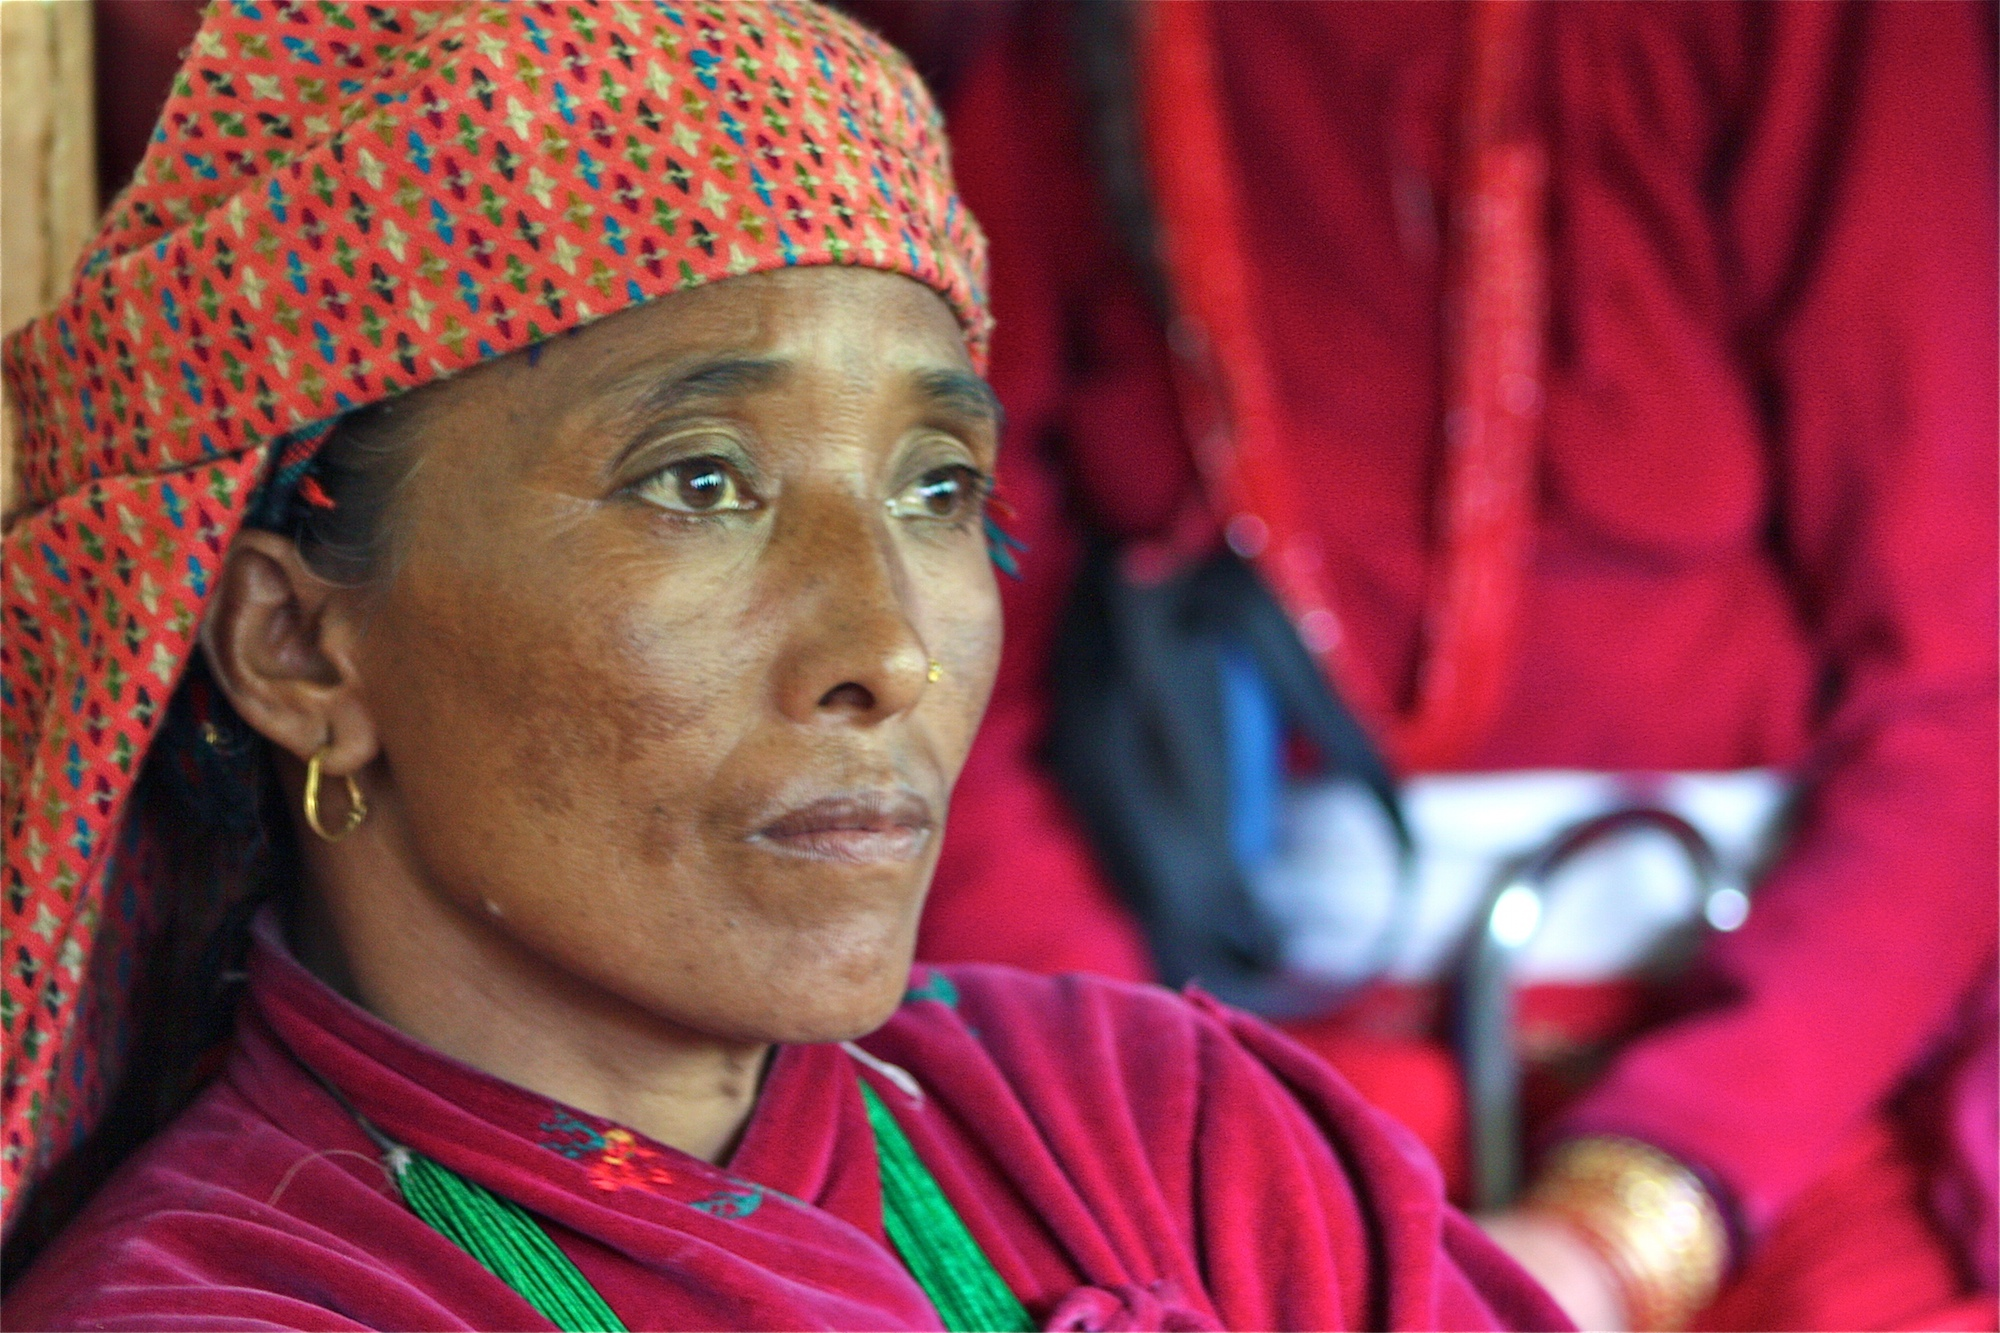 Badam Mahatara, 46 and mother-of-four, says the discrimination in her community is never ending. Women throughout rural Nepal manage household chores and heavy manual labour, working up to 18 hours a day, even throughout pregnancy